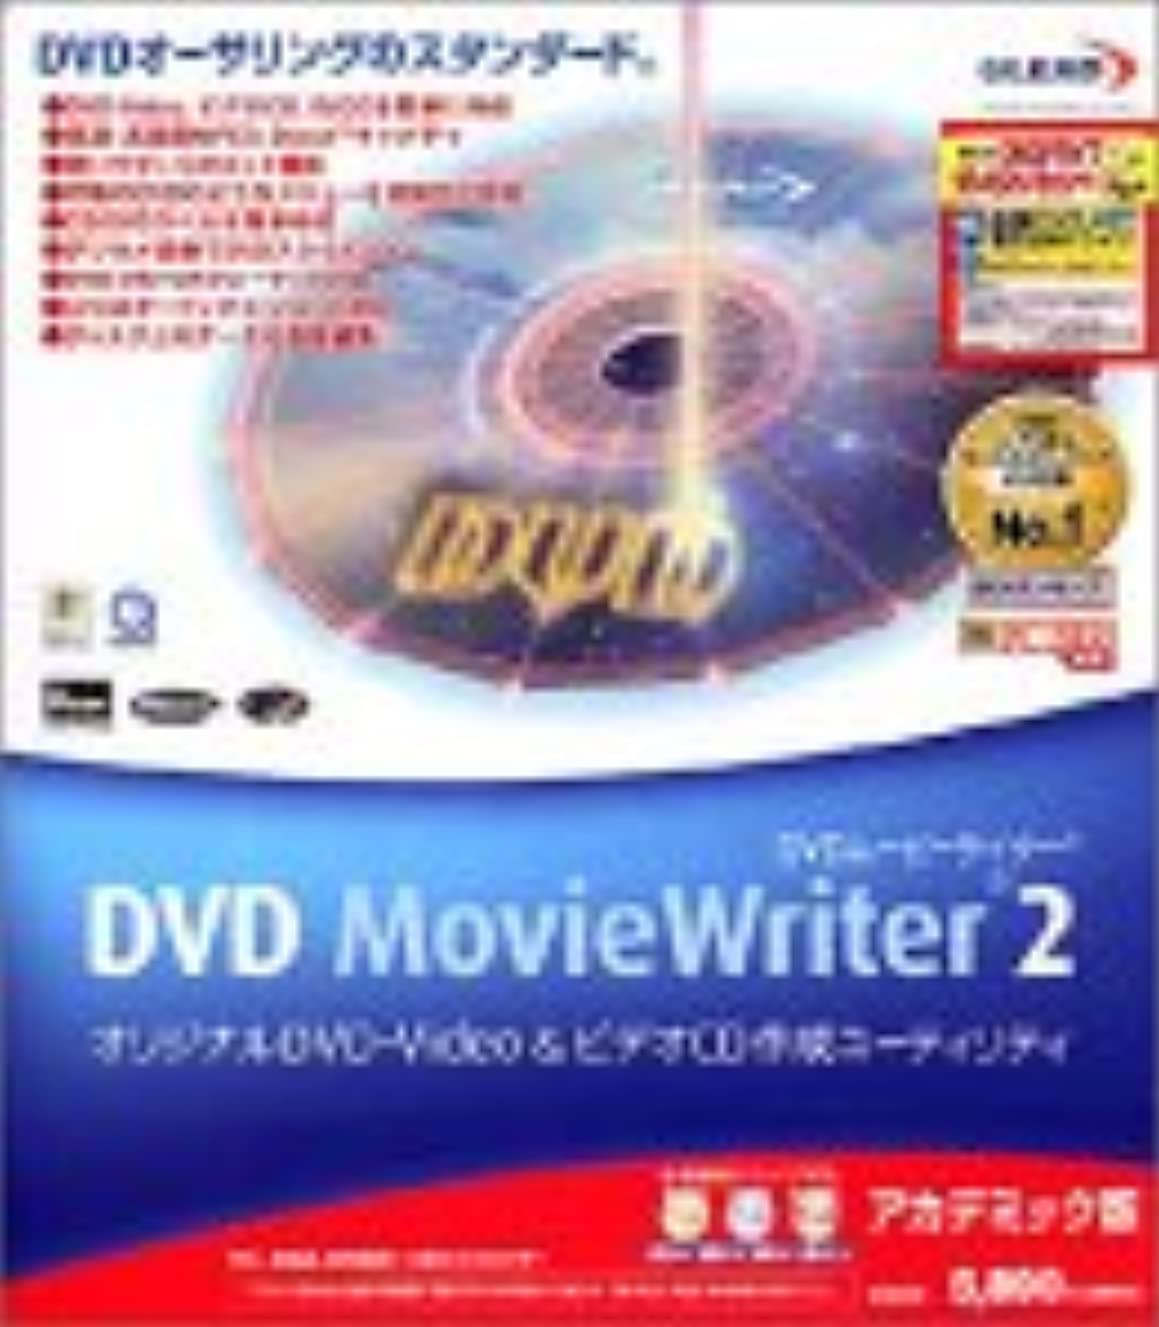 Ulead DVD MovieWriter 2 アカデミック版